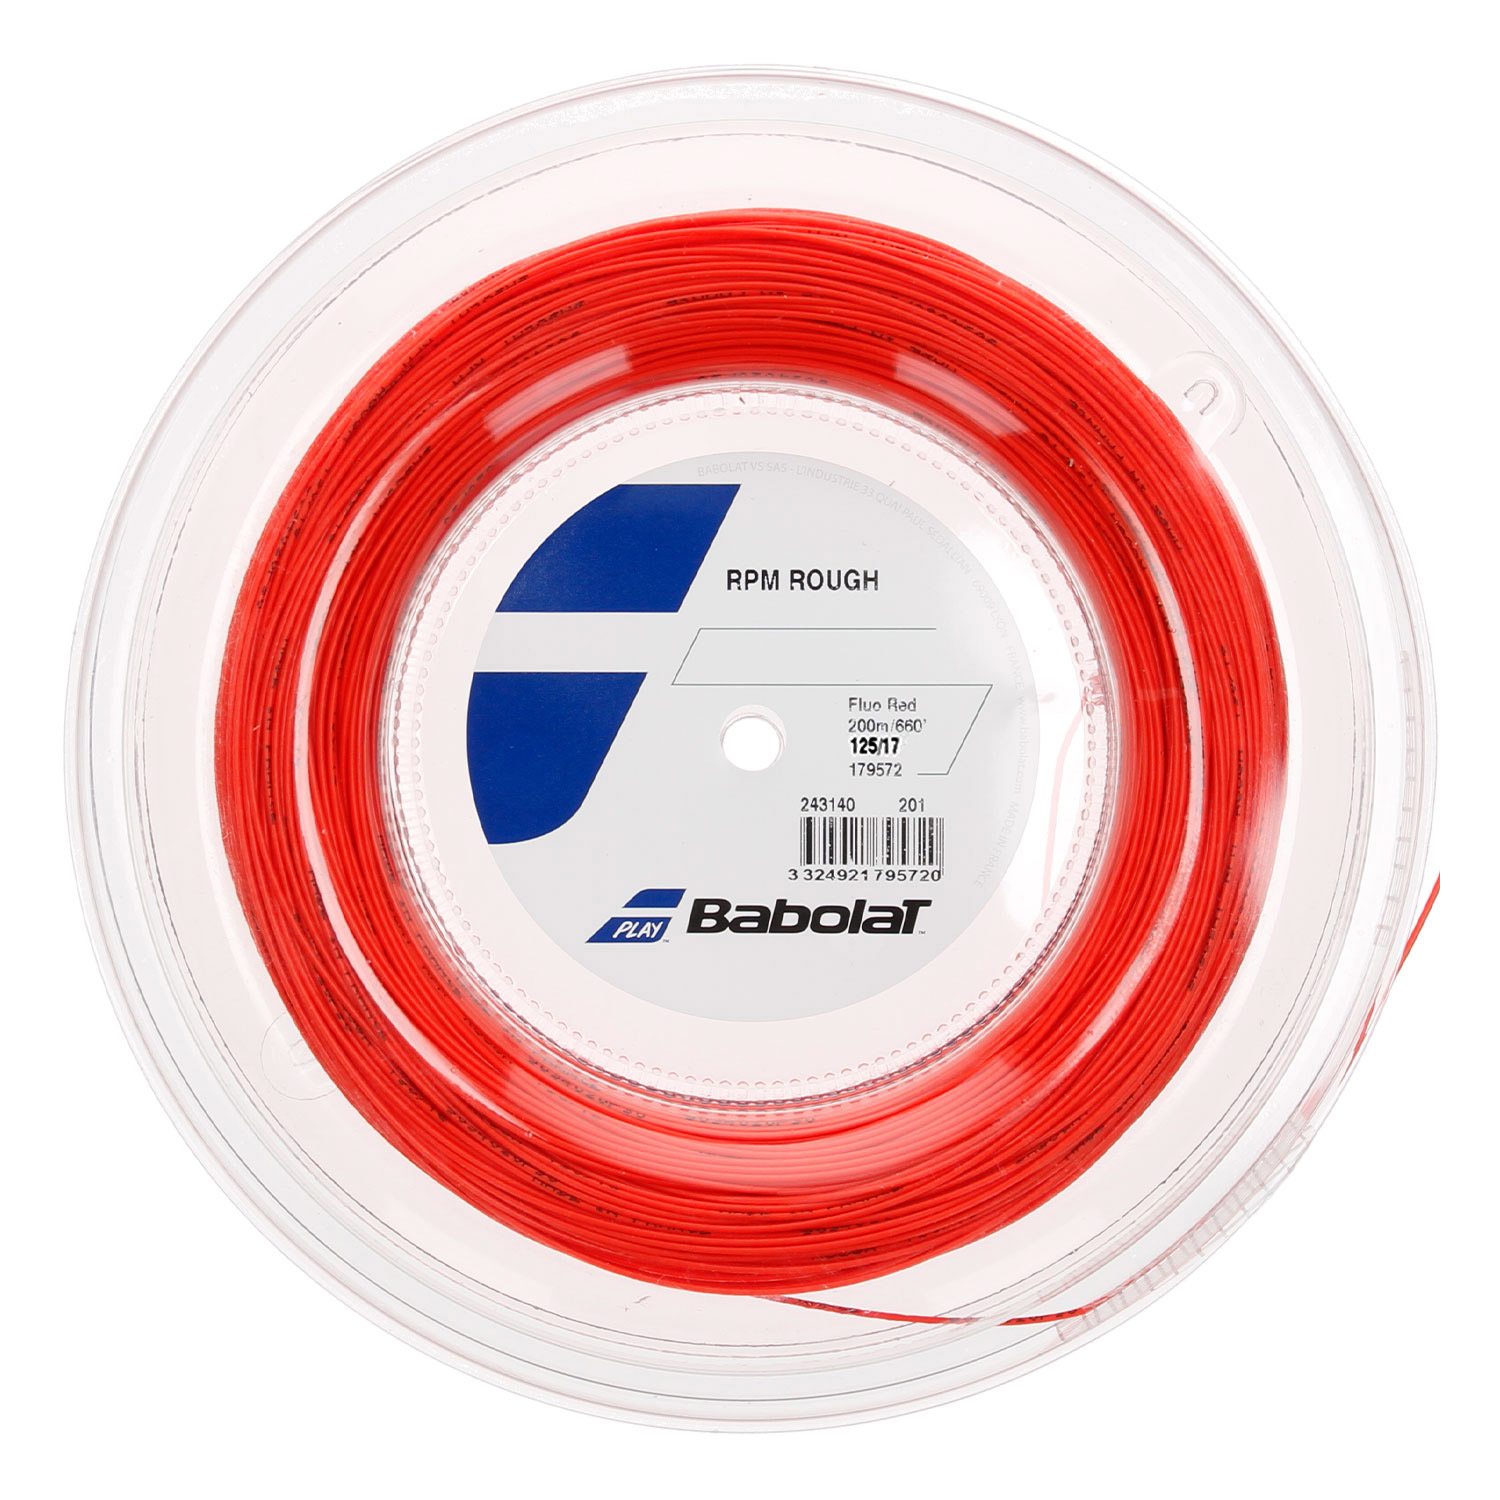 babolat-rpm-rough-rojo.jpg